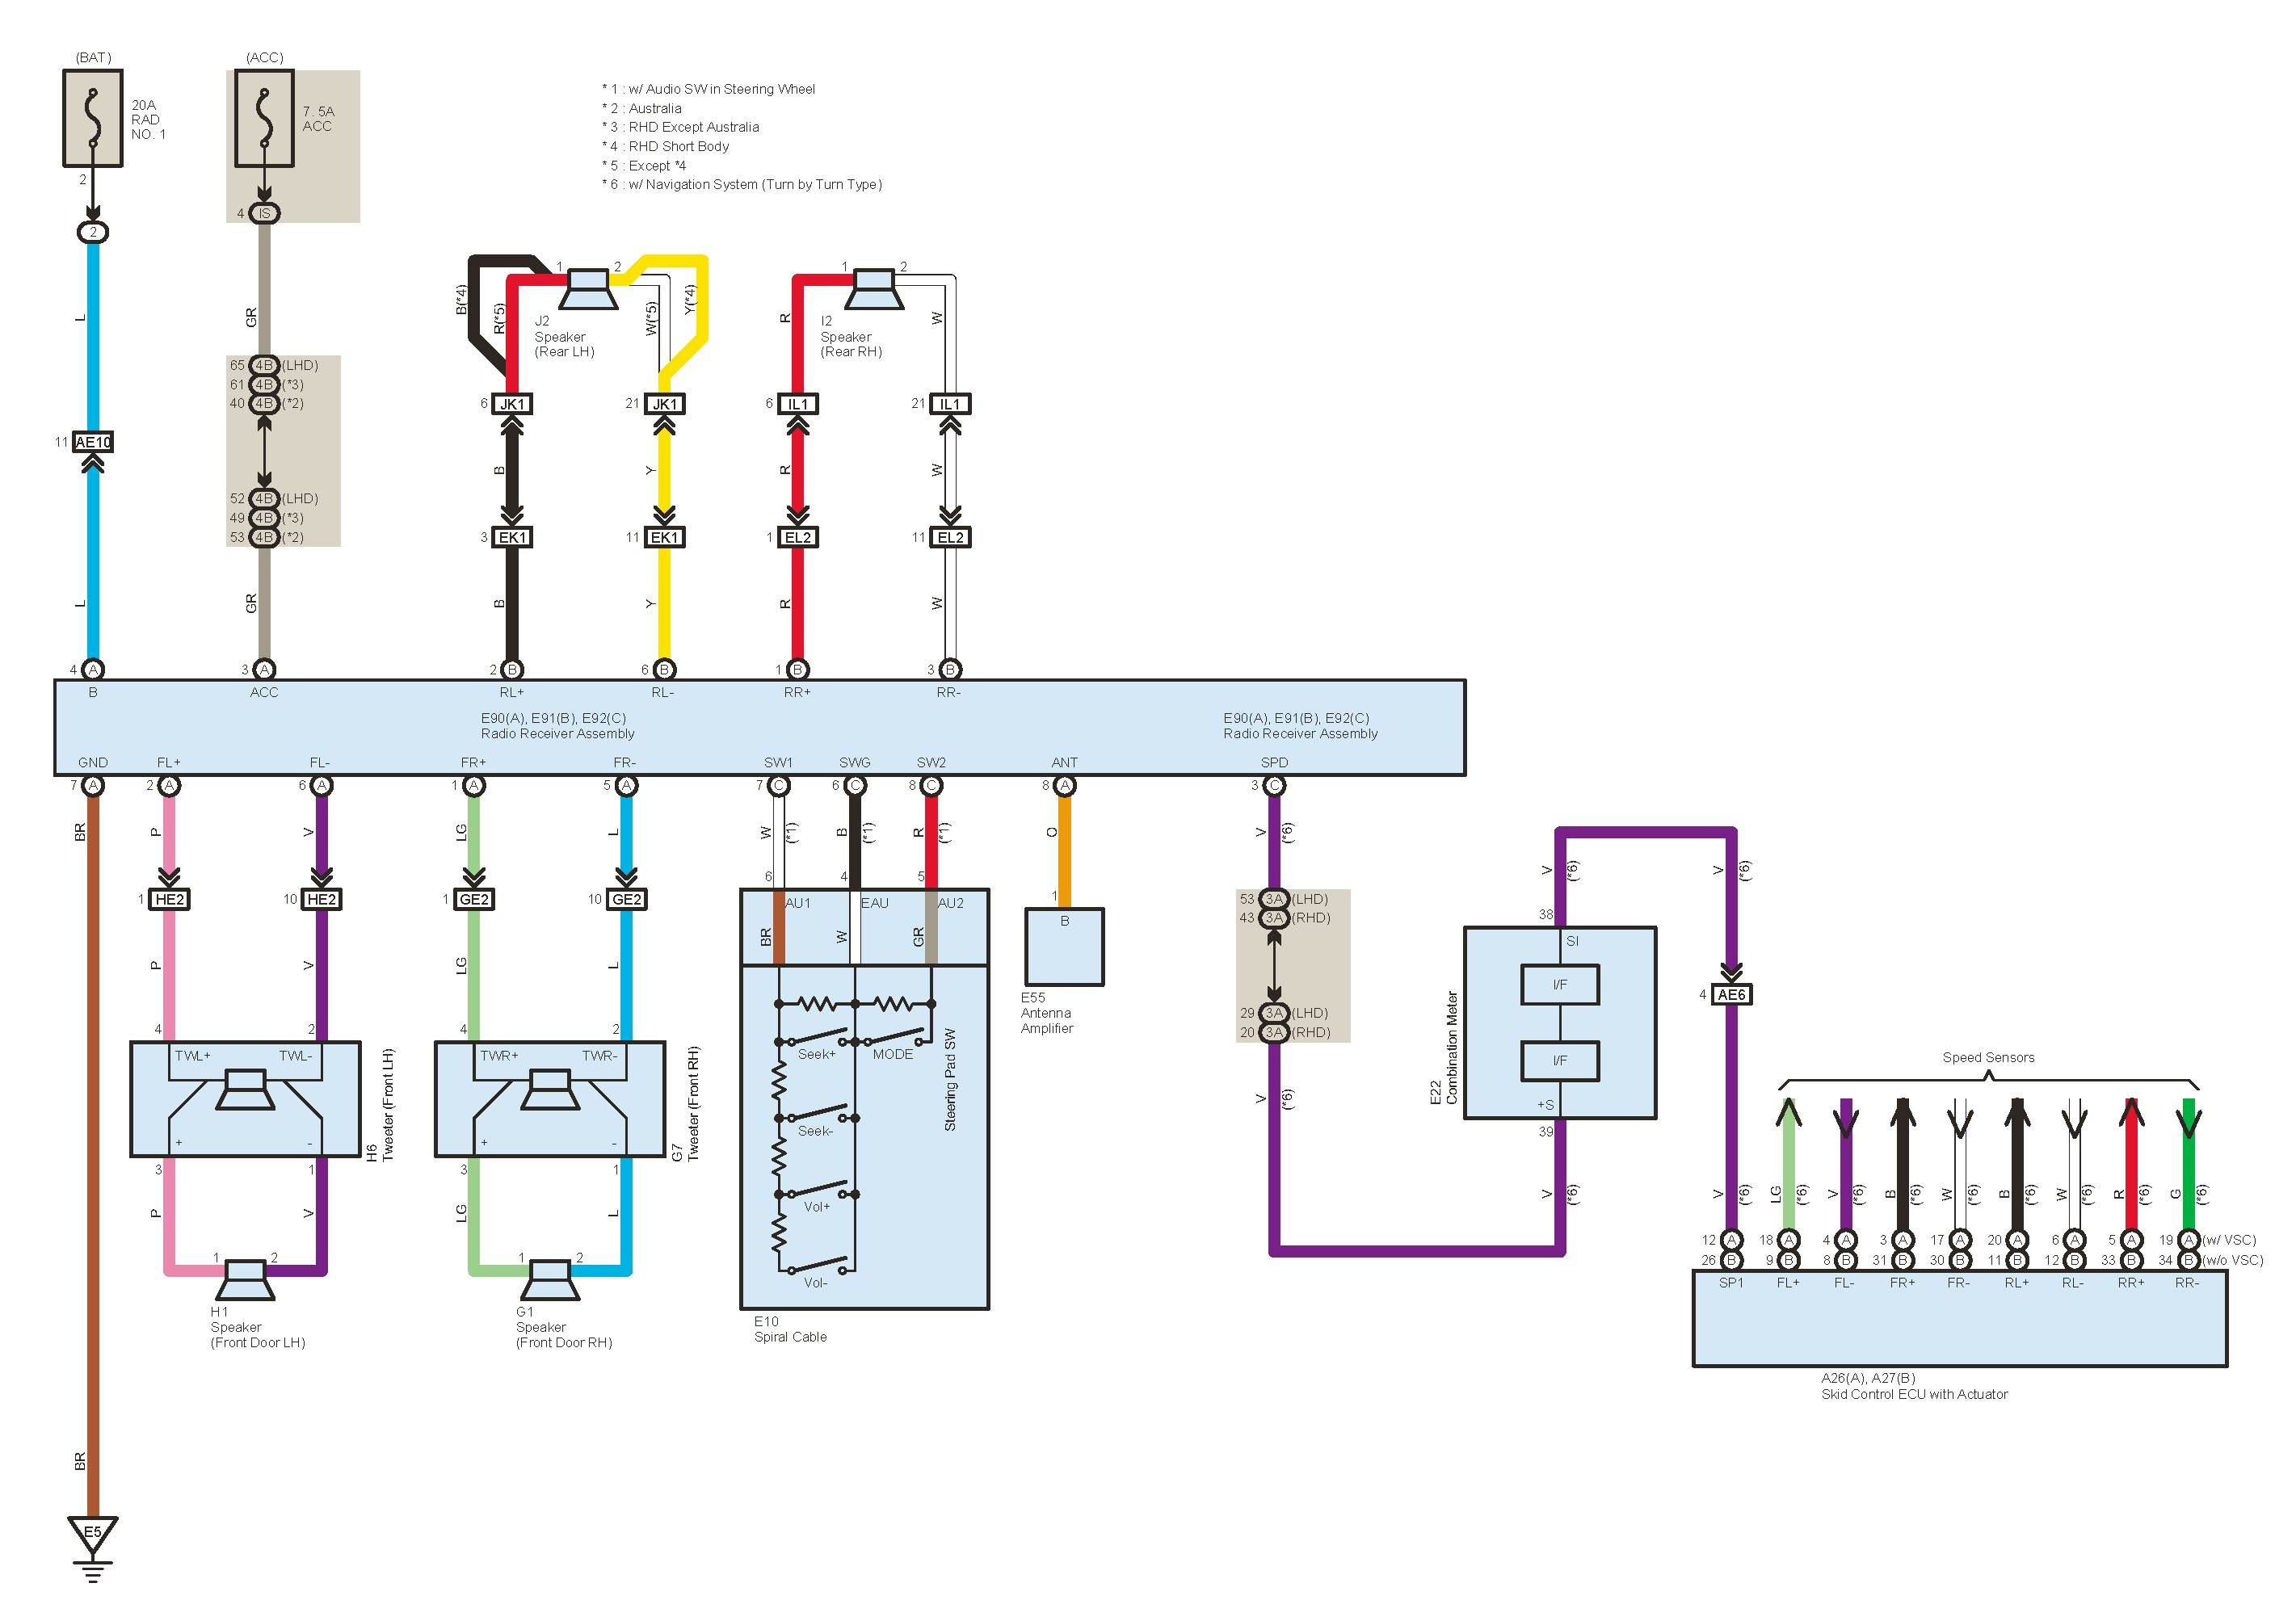 1998 Camry Fuse Box Diagram Wiring Library